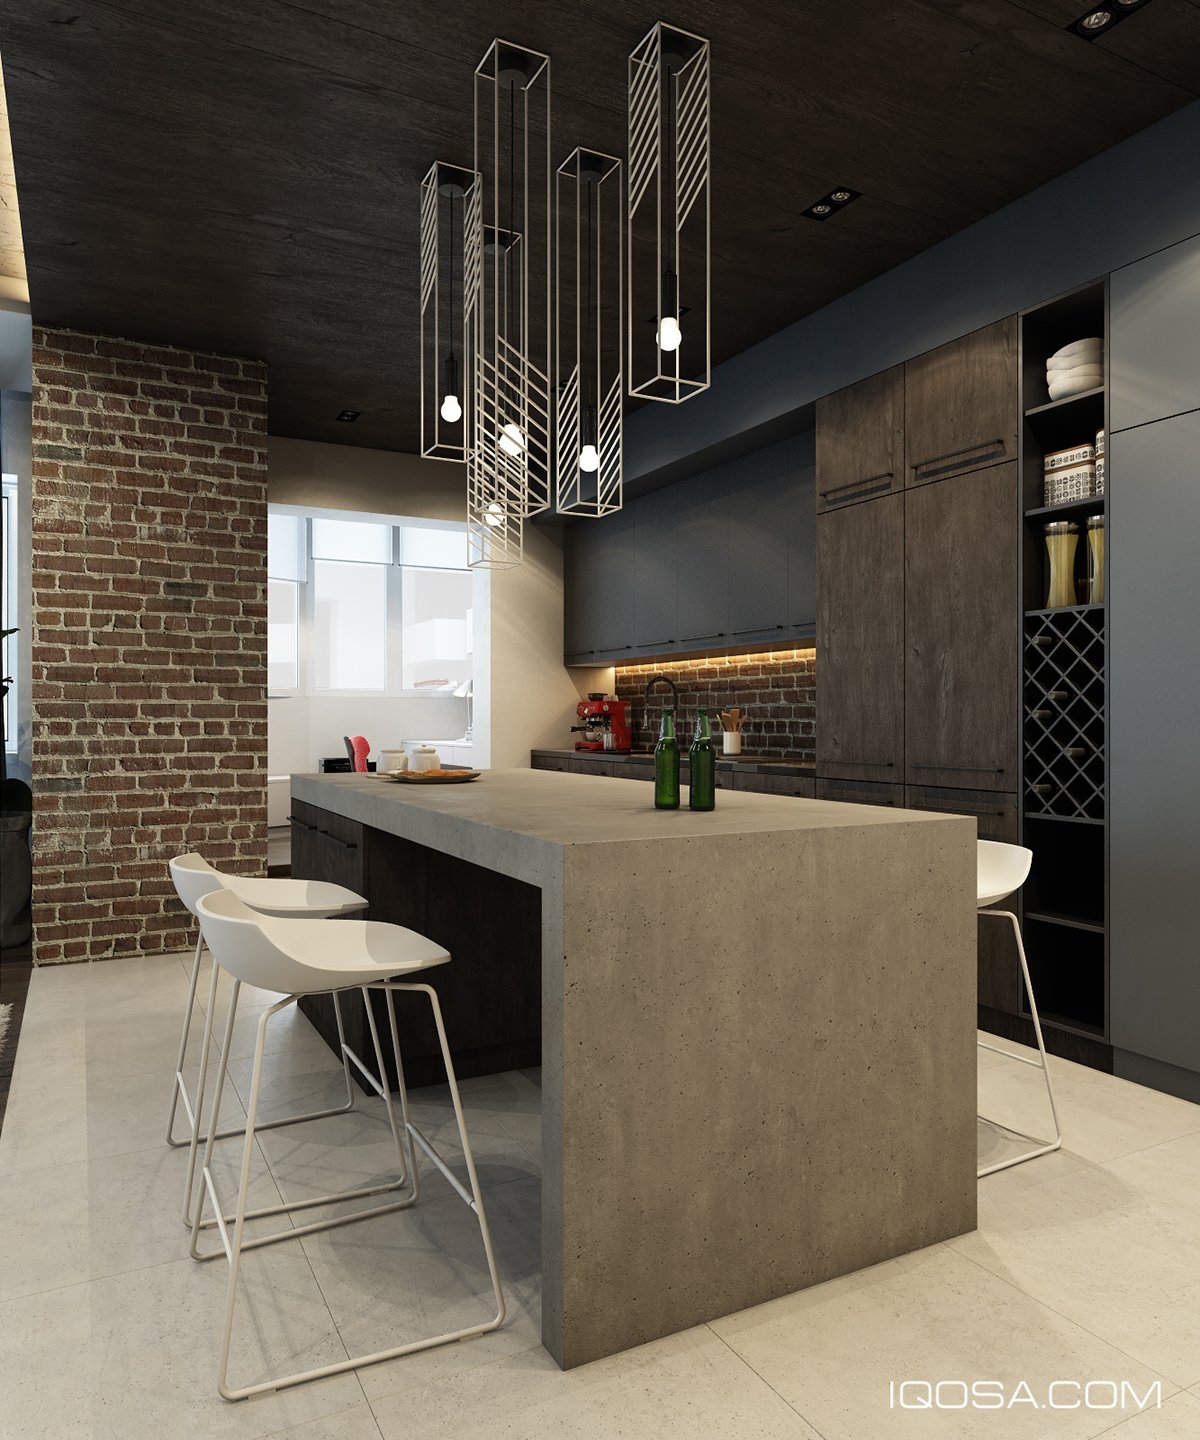 Cement Accent Wall : Design a chic modern space around brick accent wall